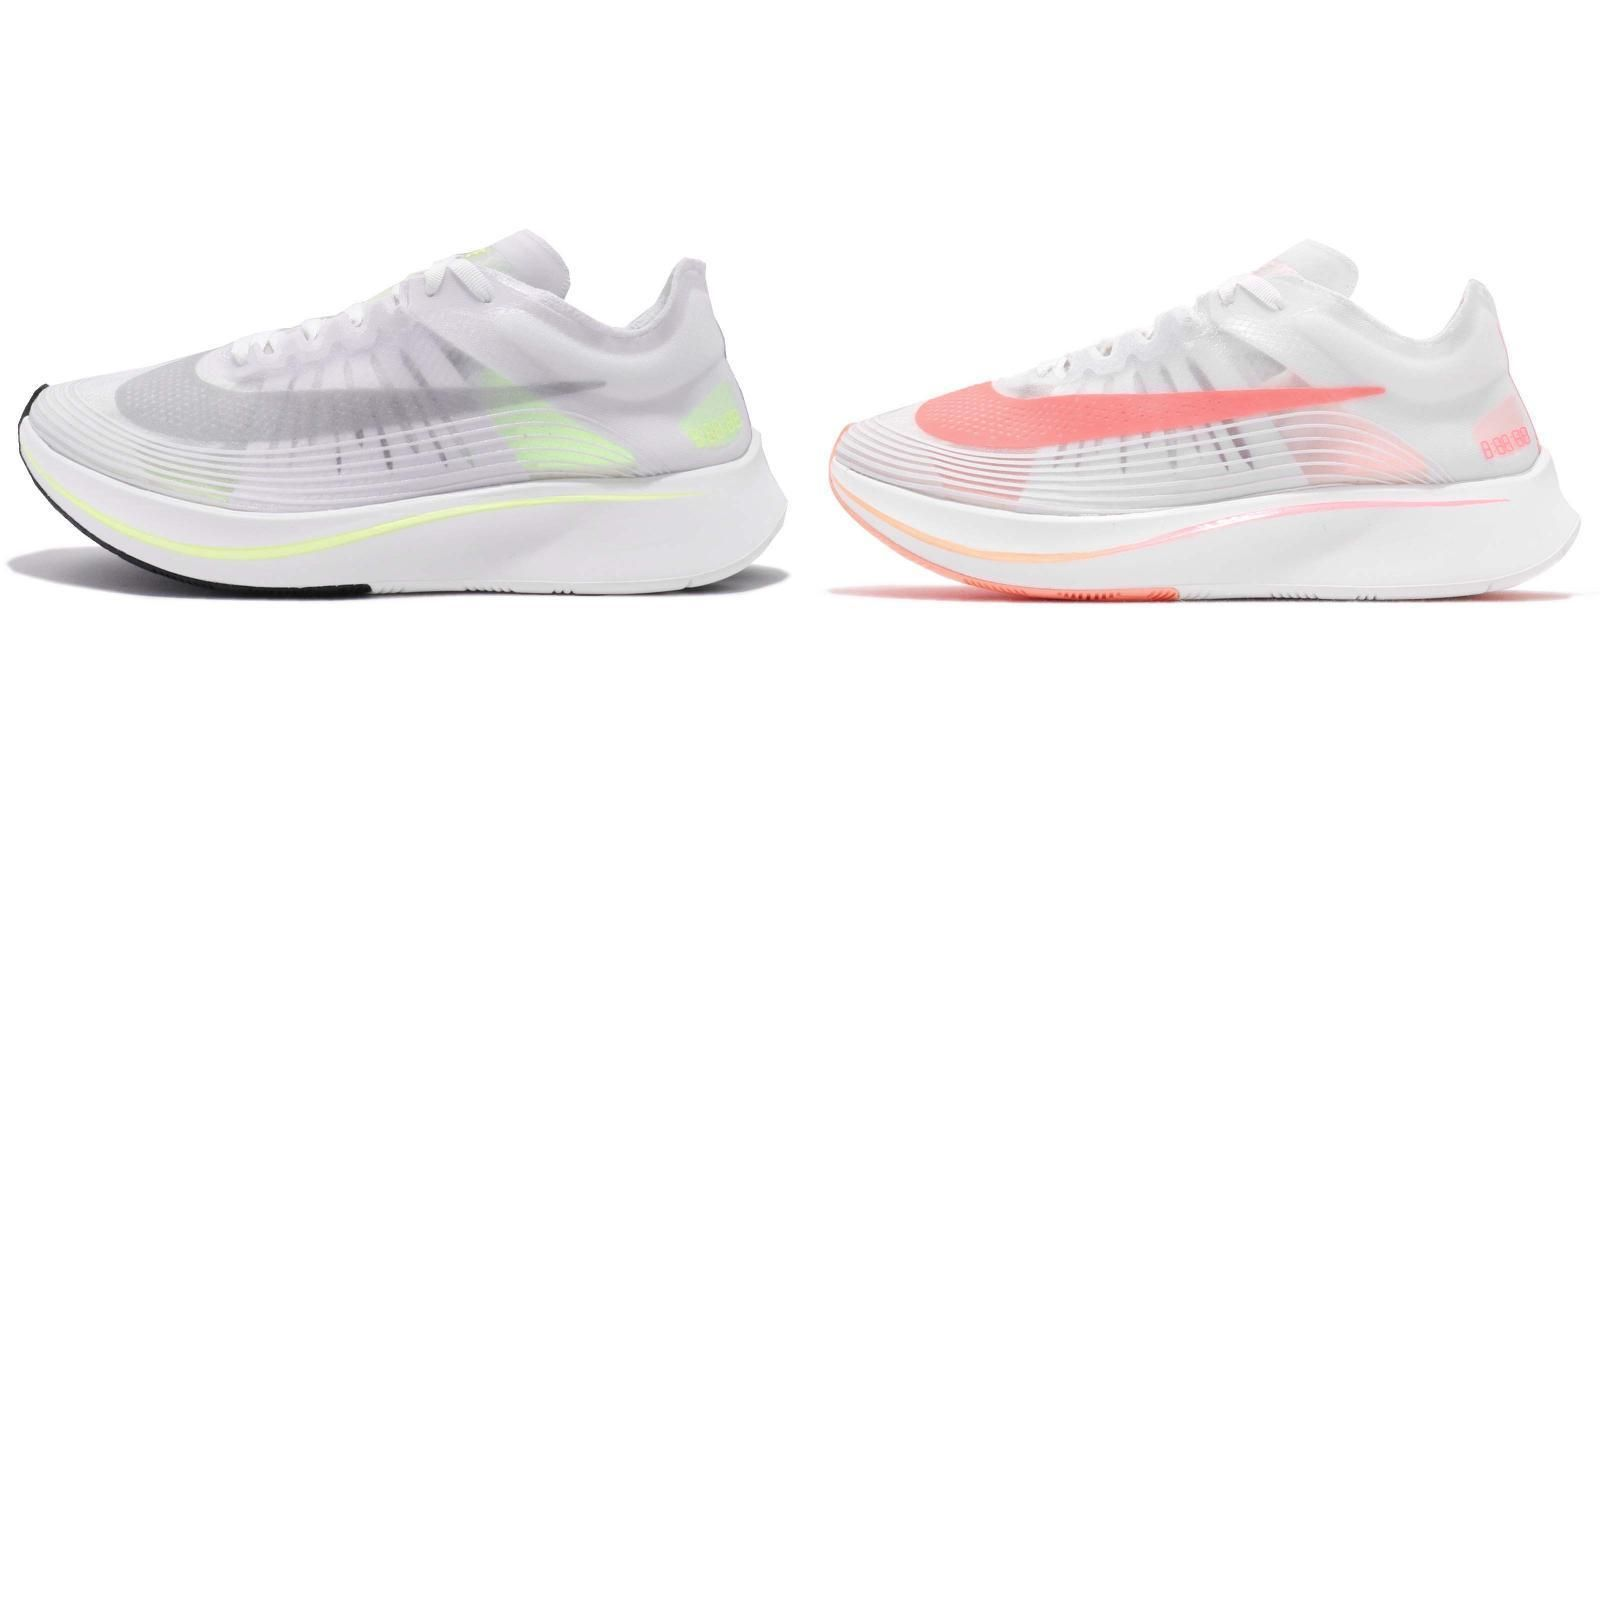 Nike Wmns Zoom Fly SP London / Boston Women Running Shoes Sneakers Pick 1